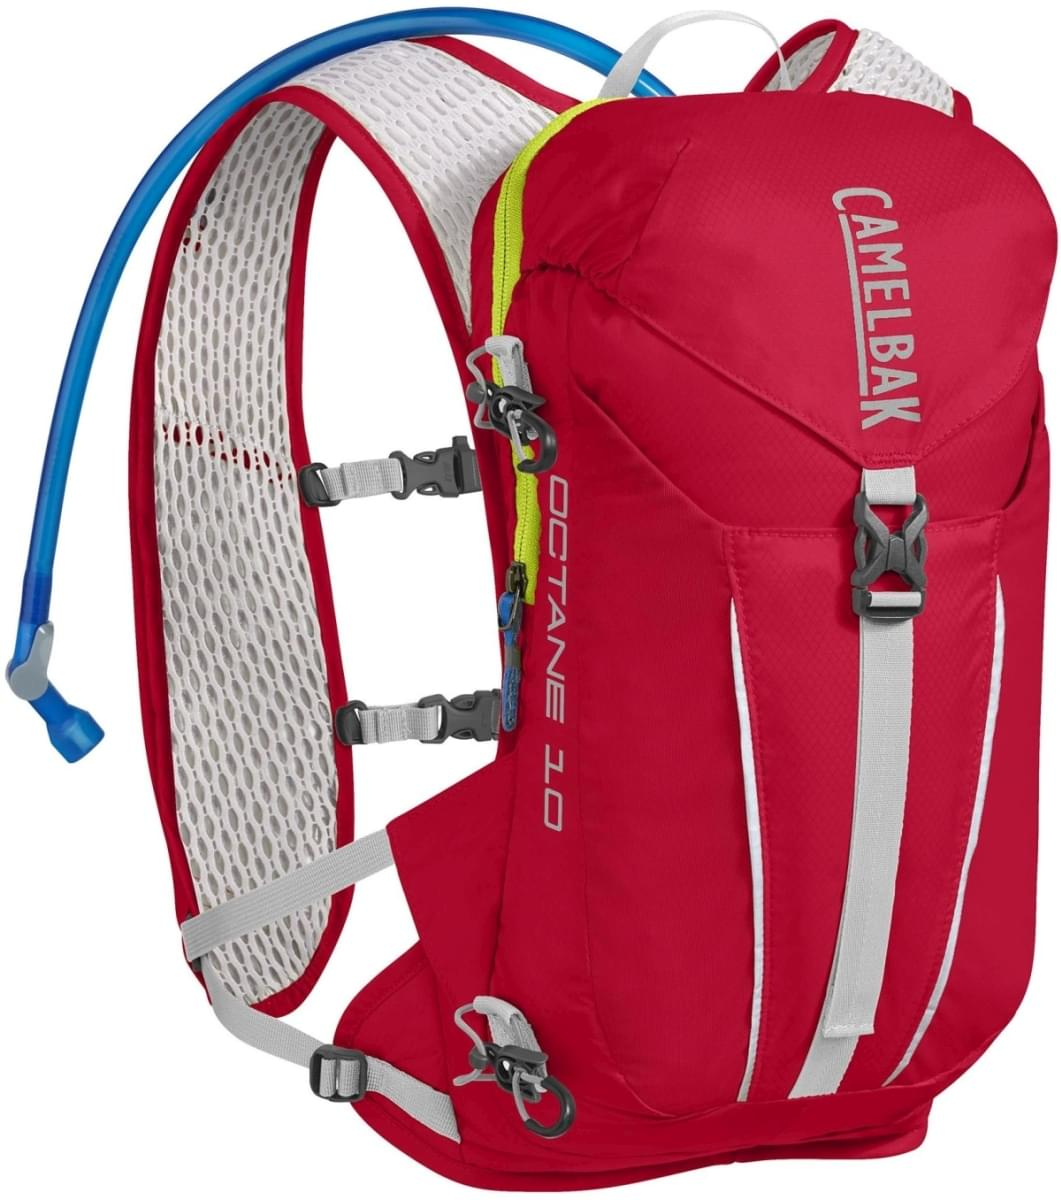 Camelbak Octane 10 - Crimson Red/Lime Punch uni